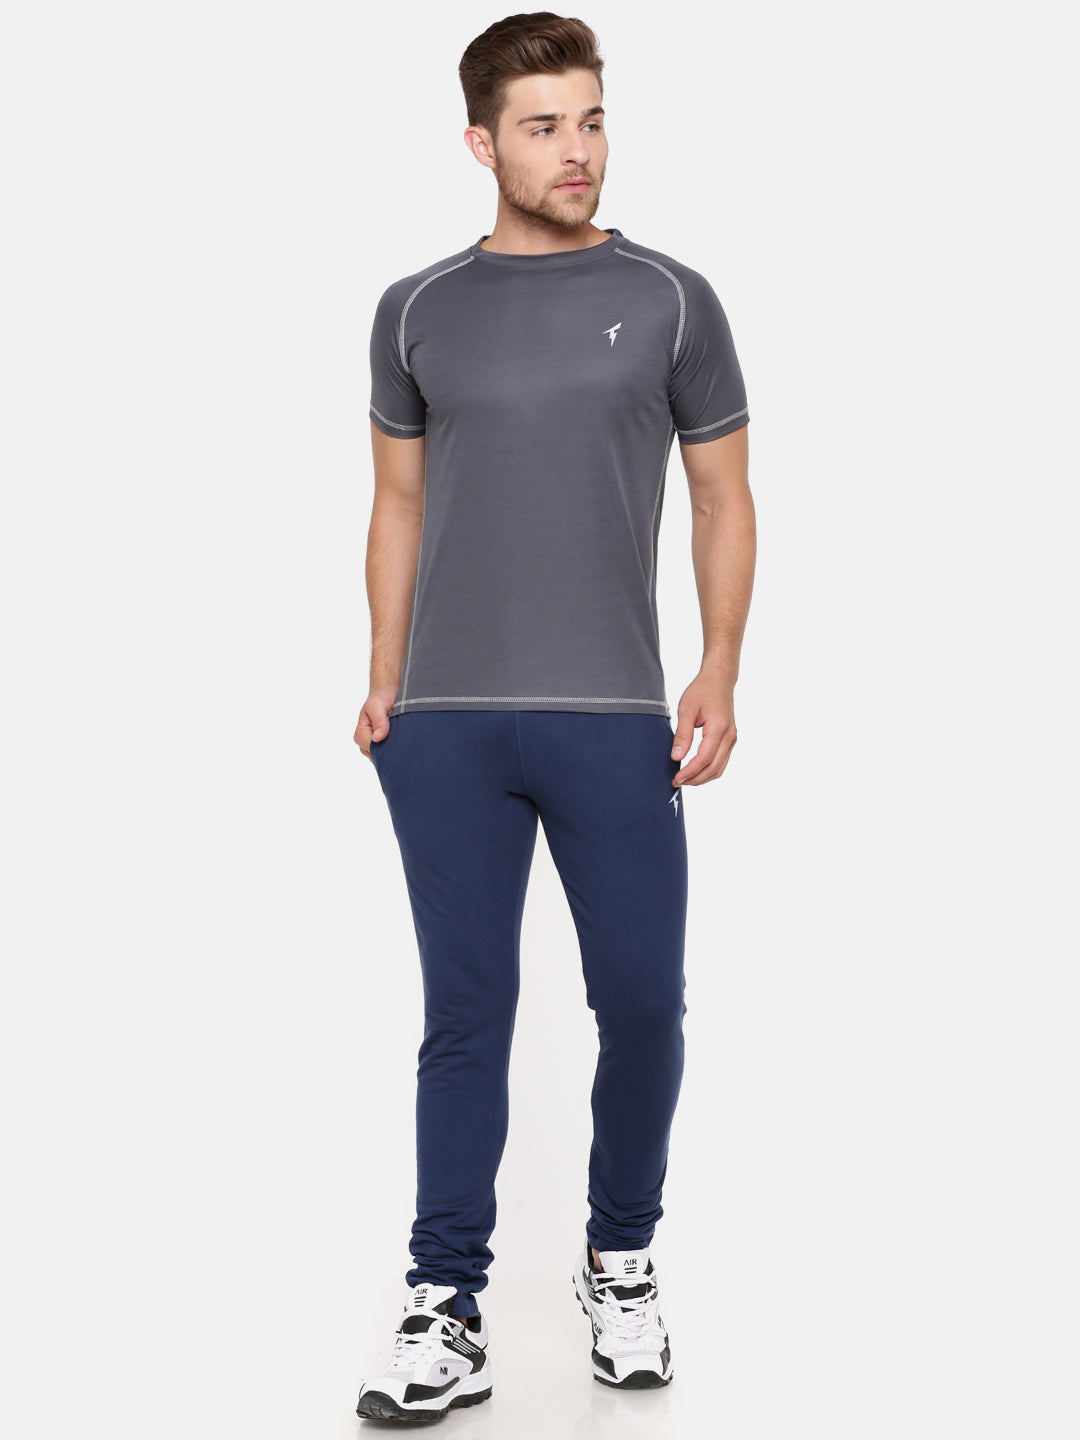 The Raglan Sleeve Athletic Tee - Cool Grey